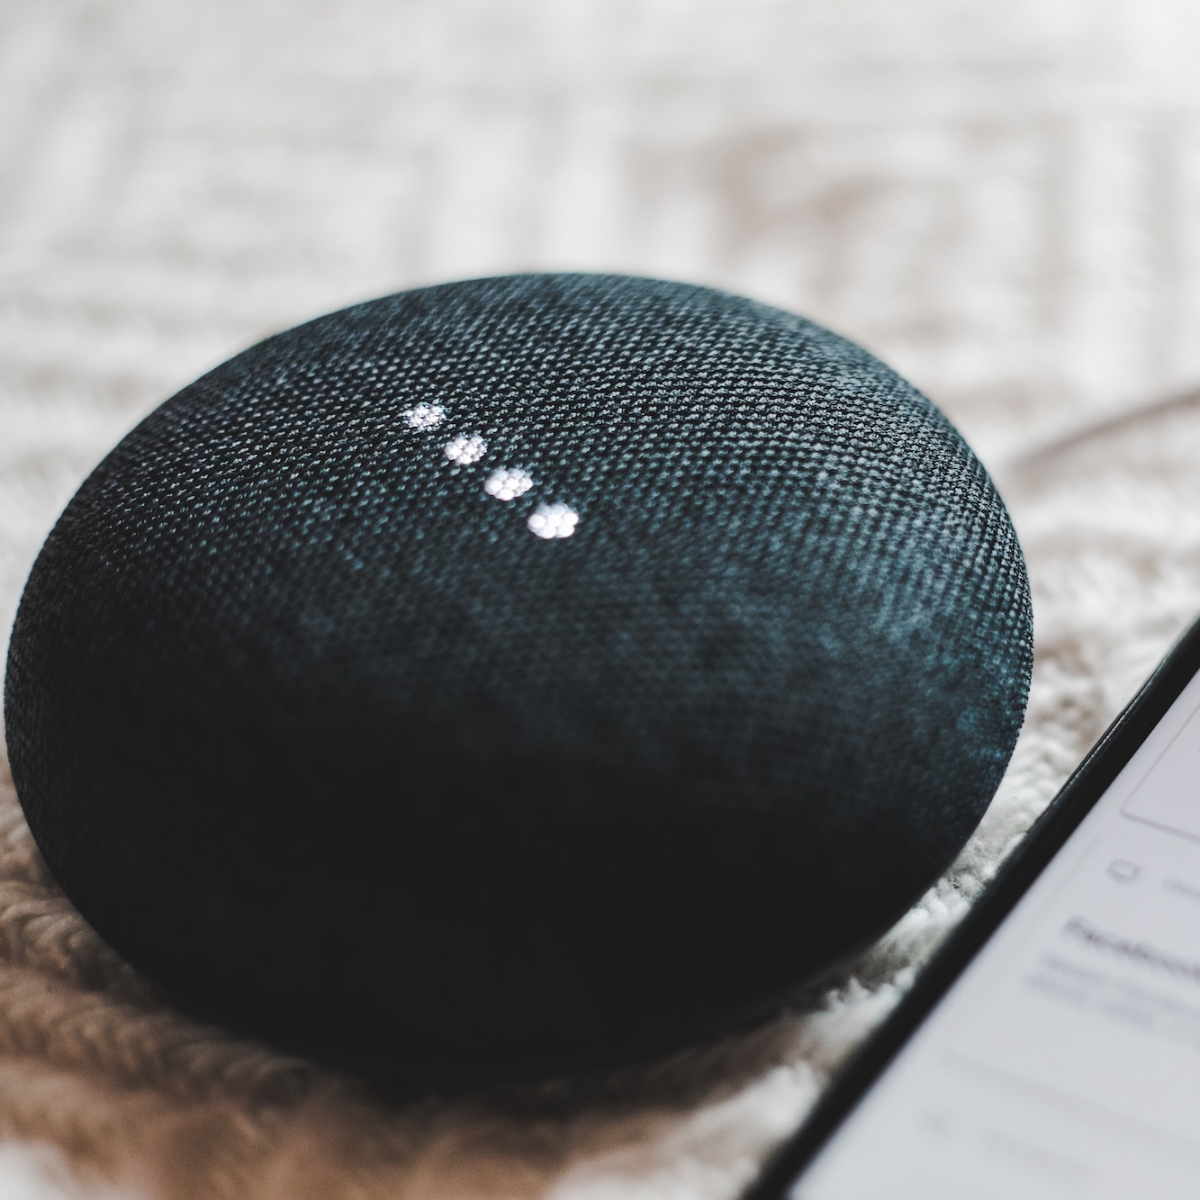 Your spouse could be spying on you via smart speaker